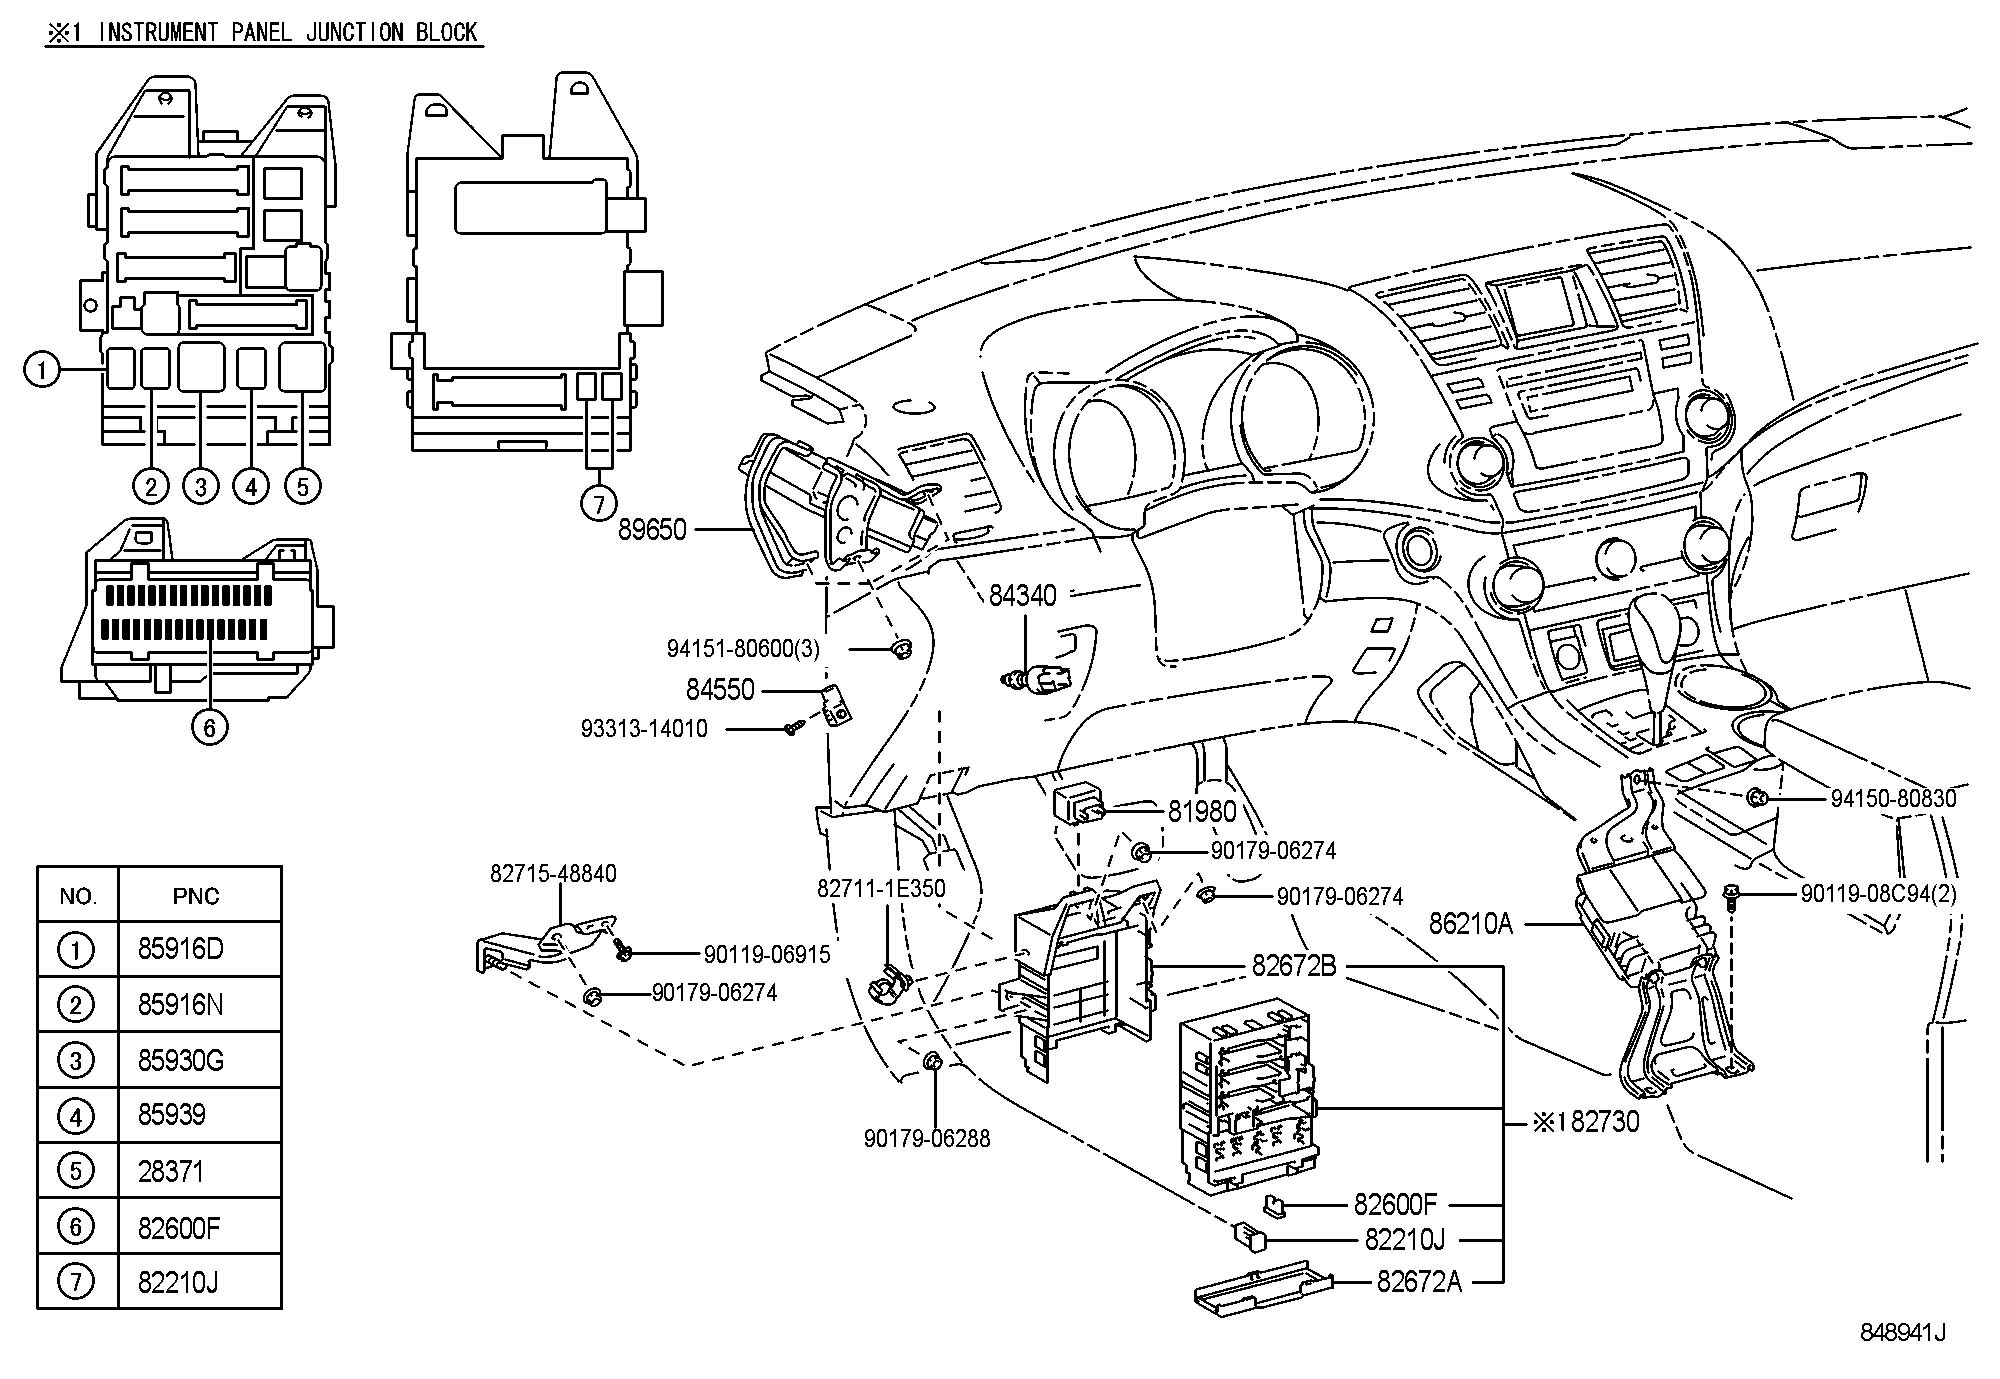 wiring diagram for a 2006 scion xb